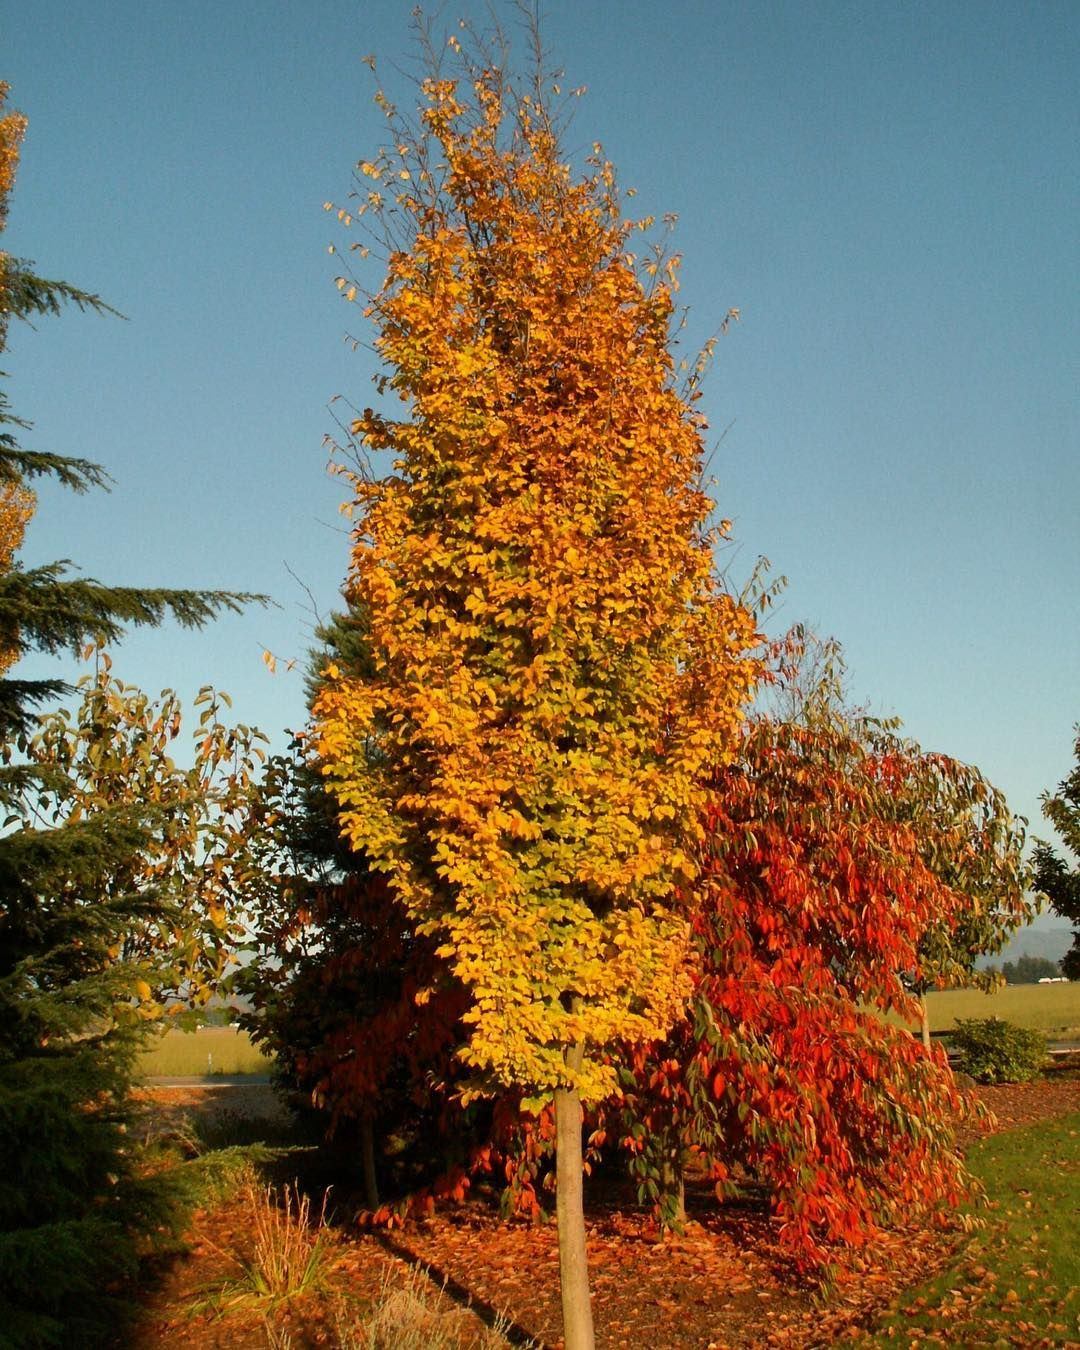 Do You Love Tall Trees And Fall Color But Have No Space For A Large Shade Tree This Parrotia Is The Tree For You Small Urban Garden Shade Trees Urban Garden